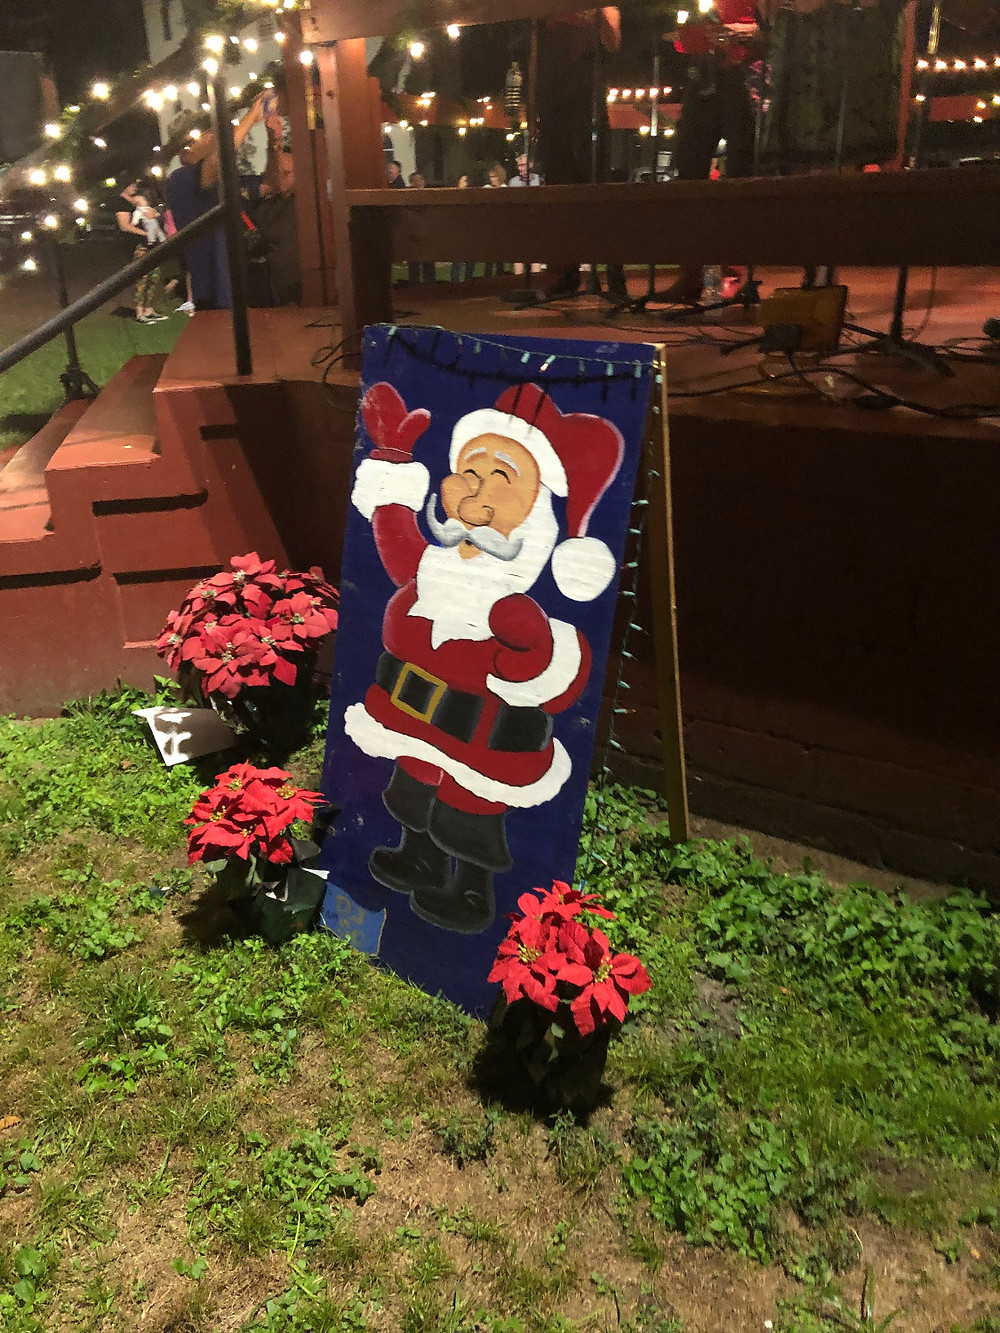 Santa Clause Christmas card on display next to City Park band stand